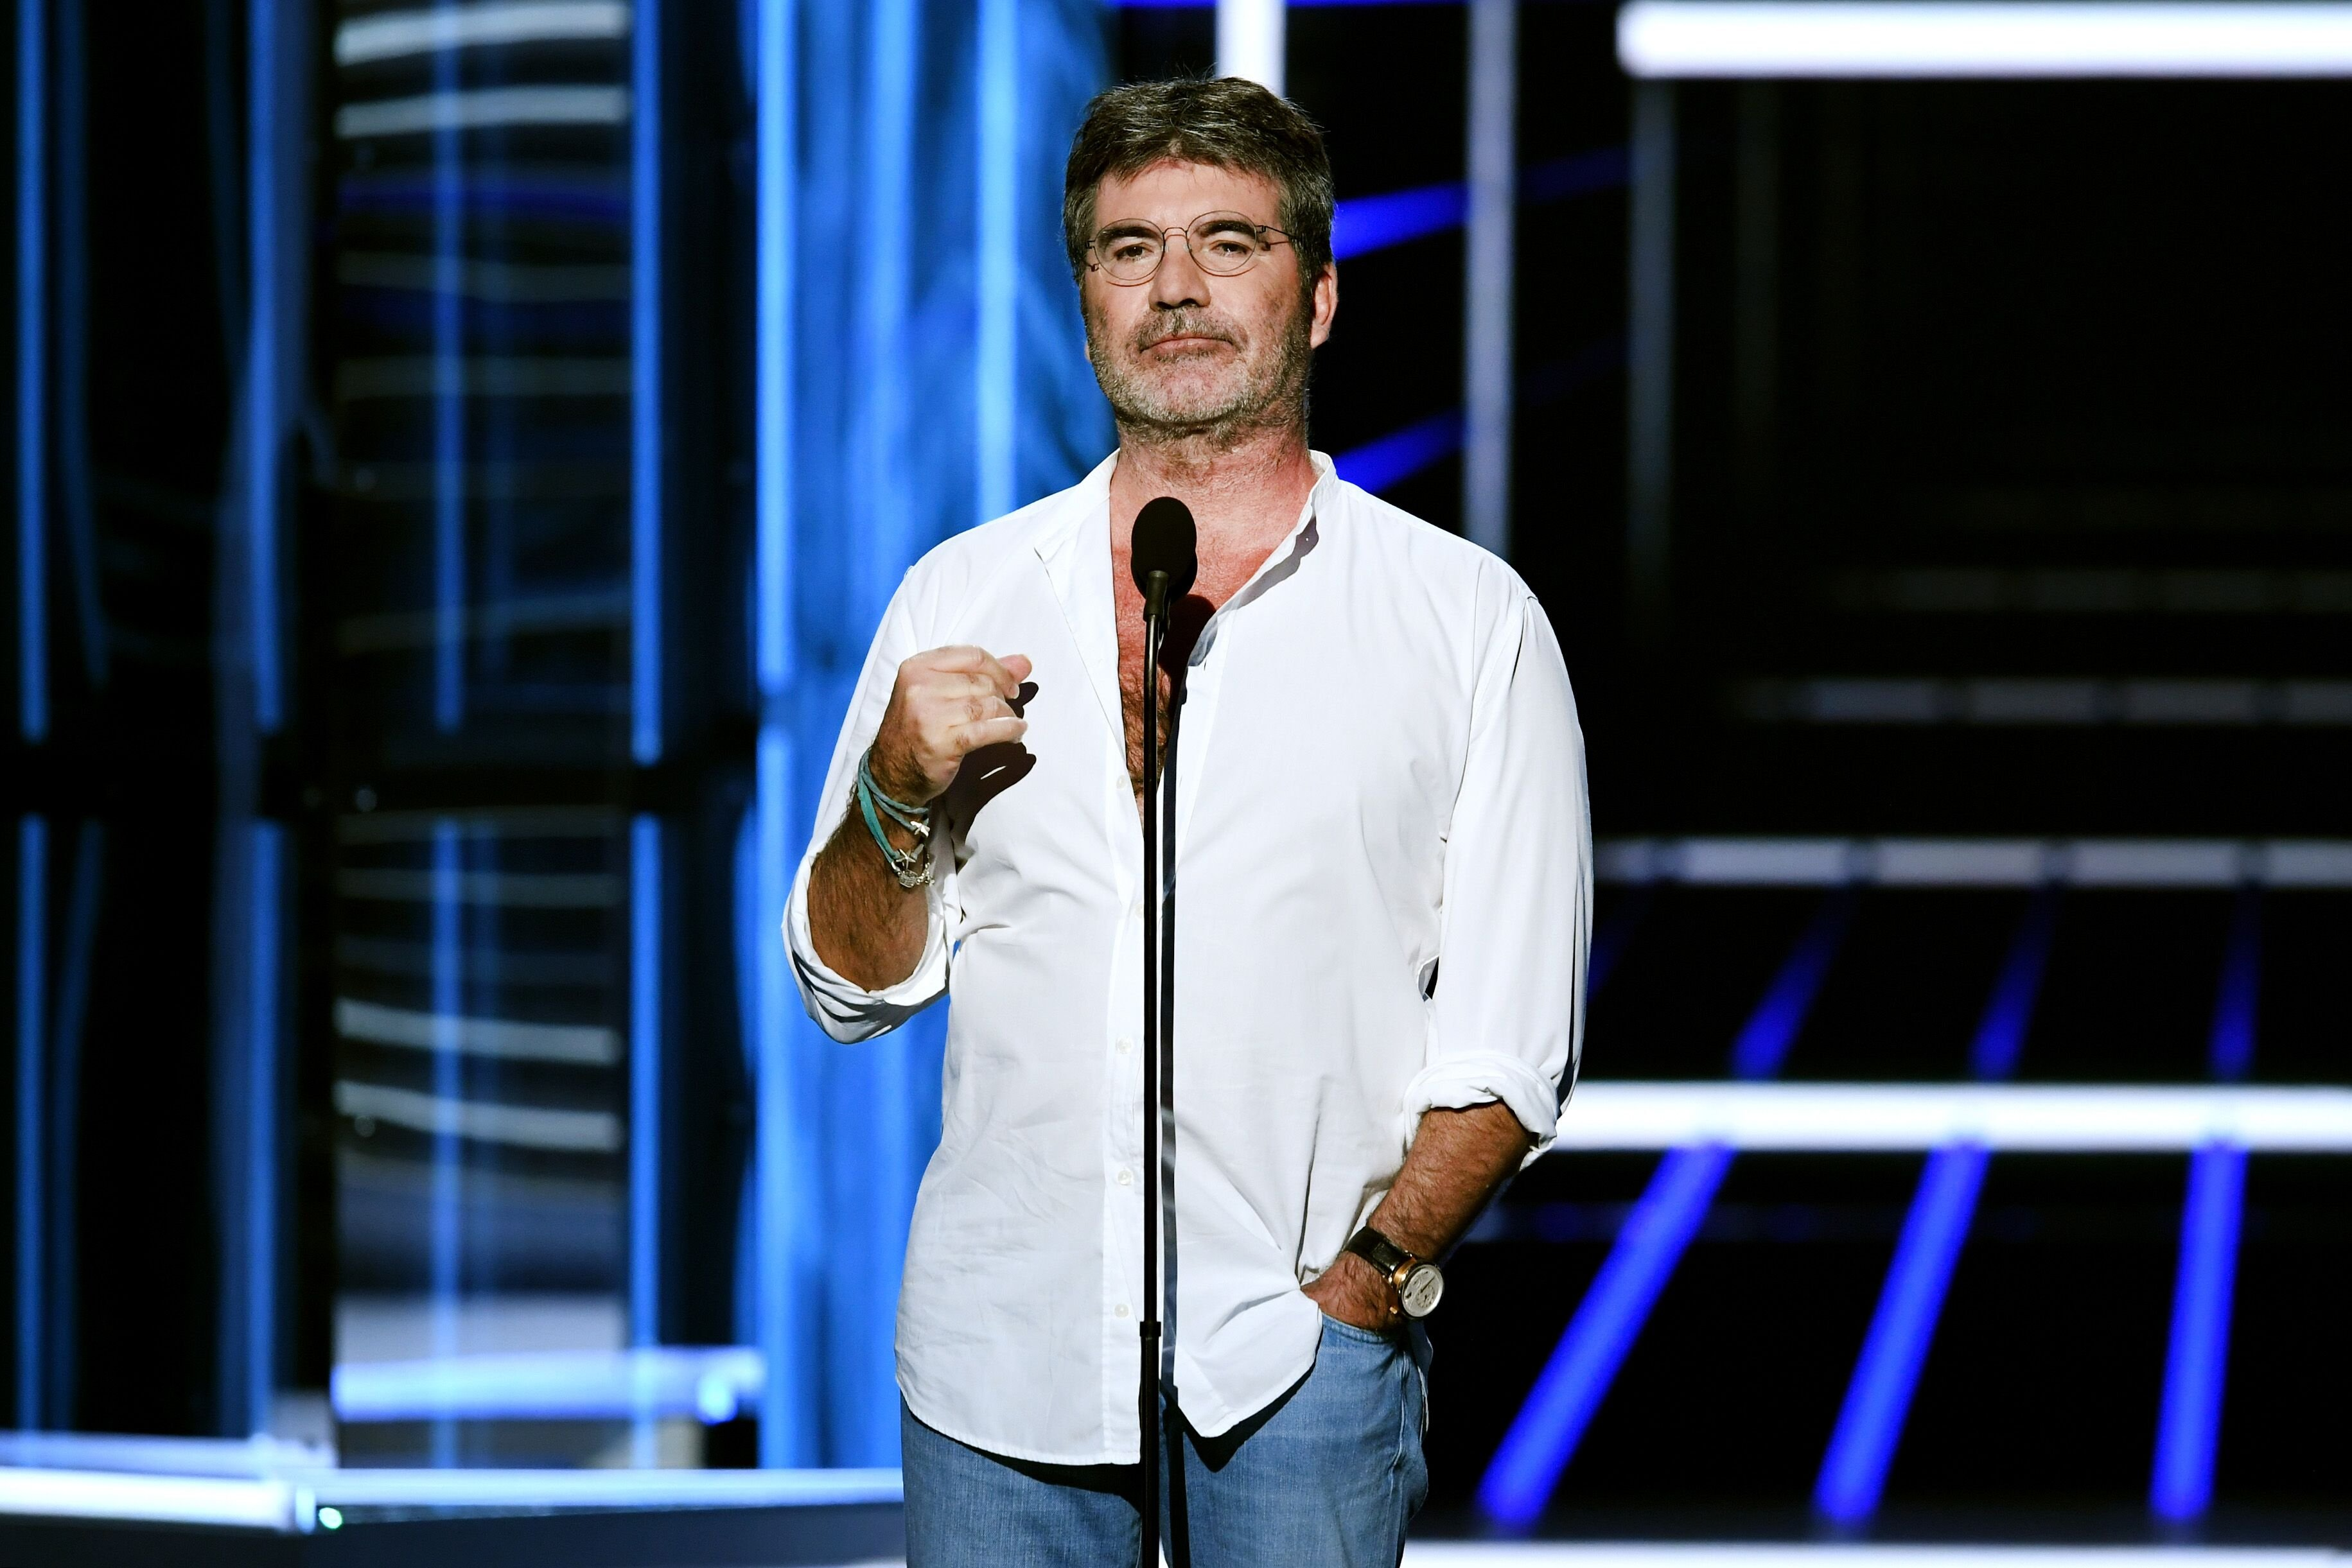 Simon Cowell speaking before an audience. | Source: Getty Images